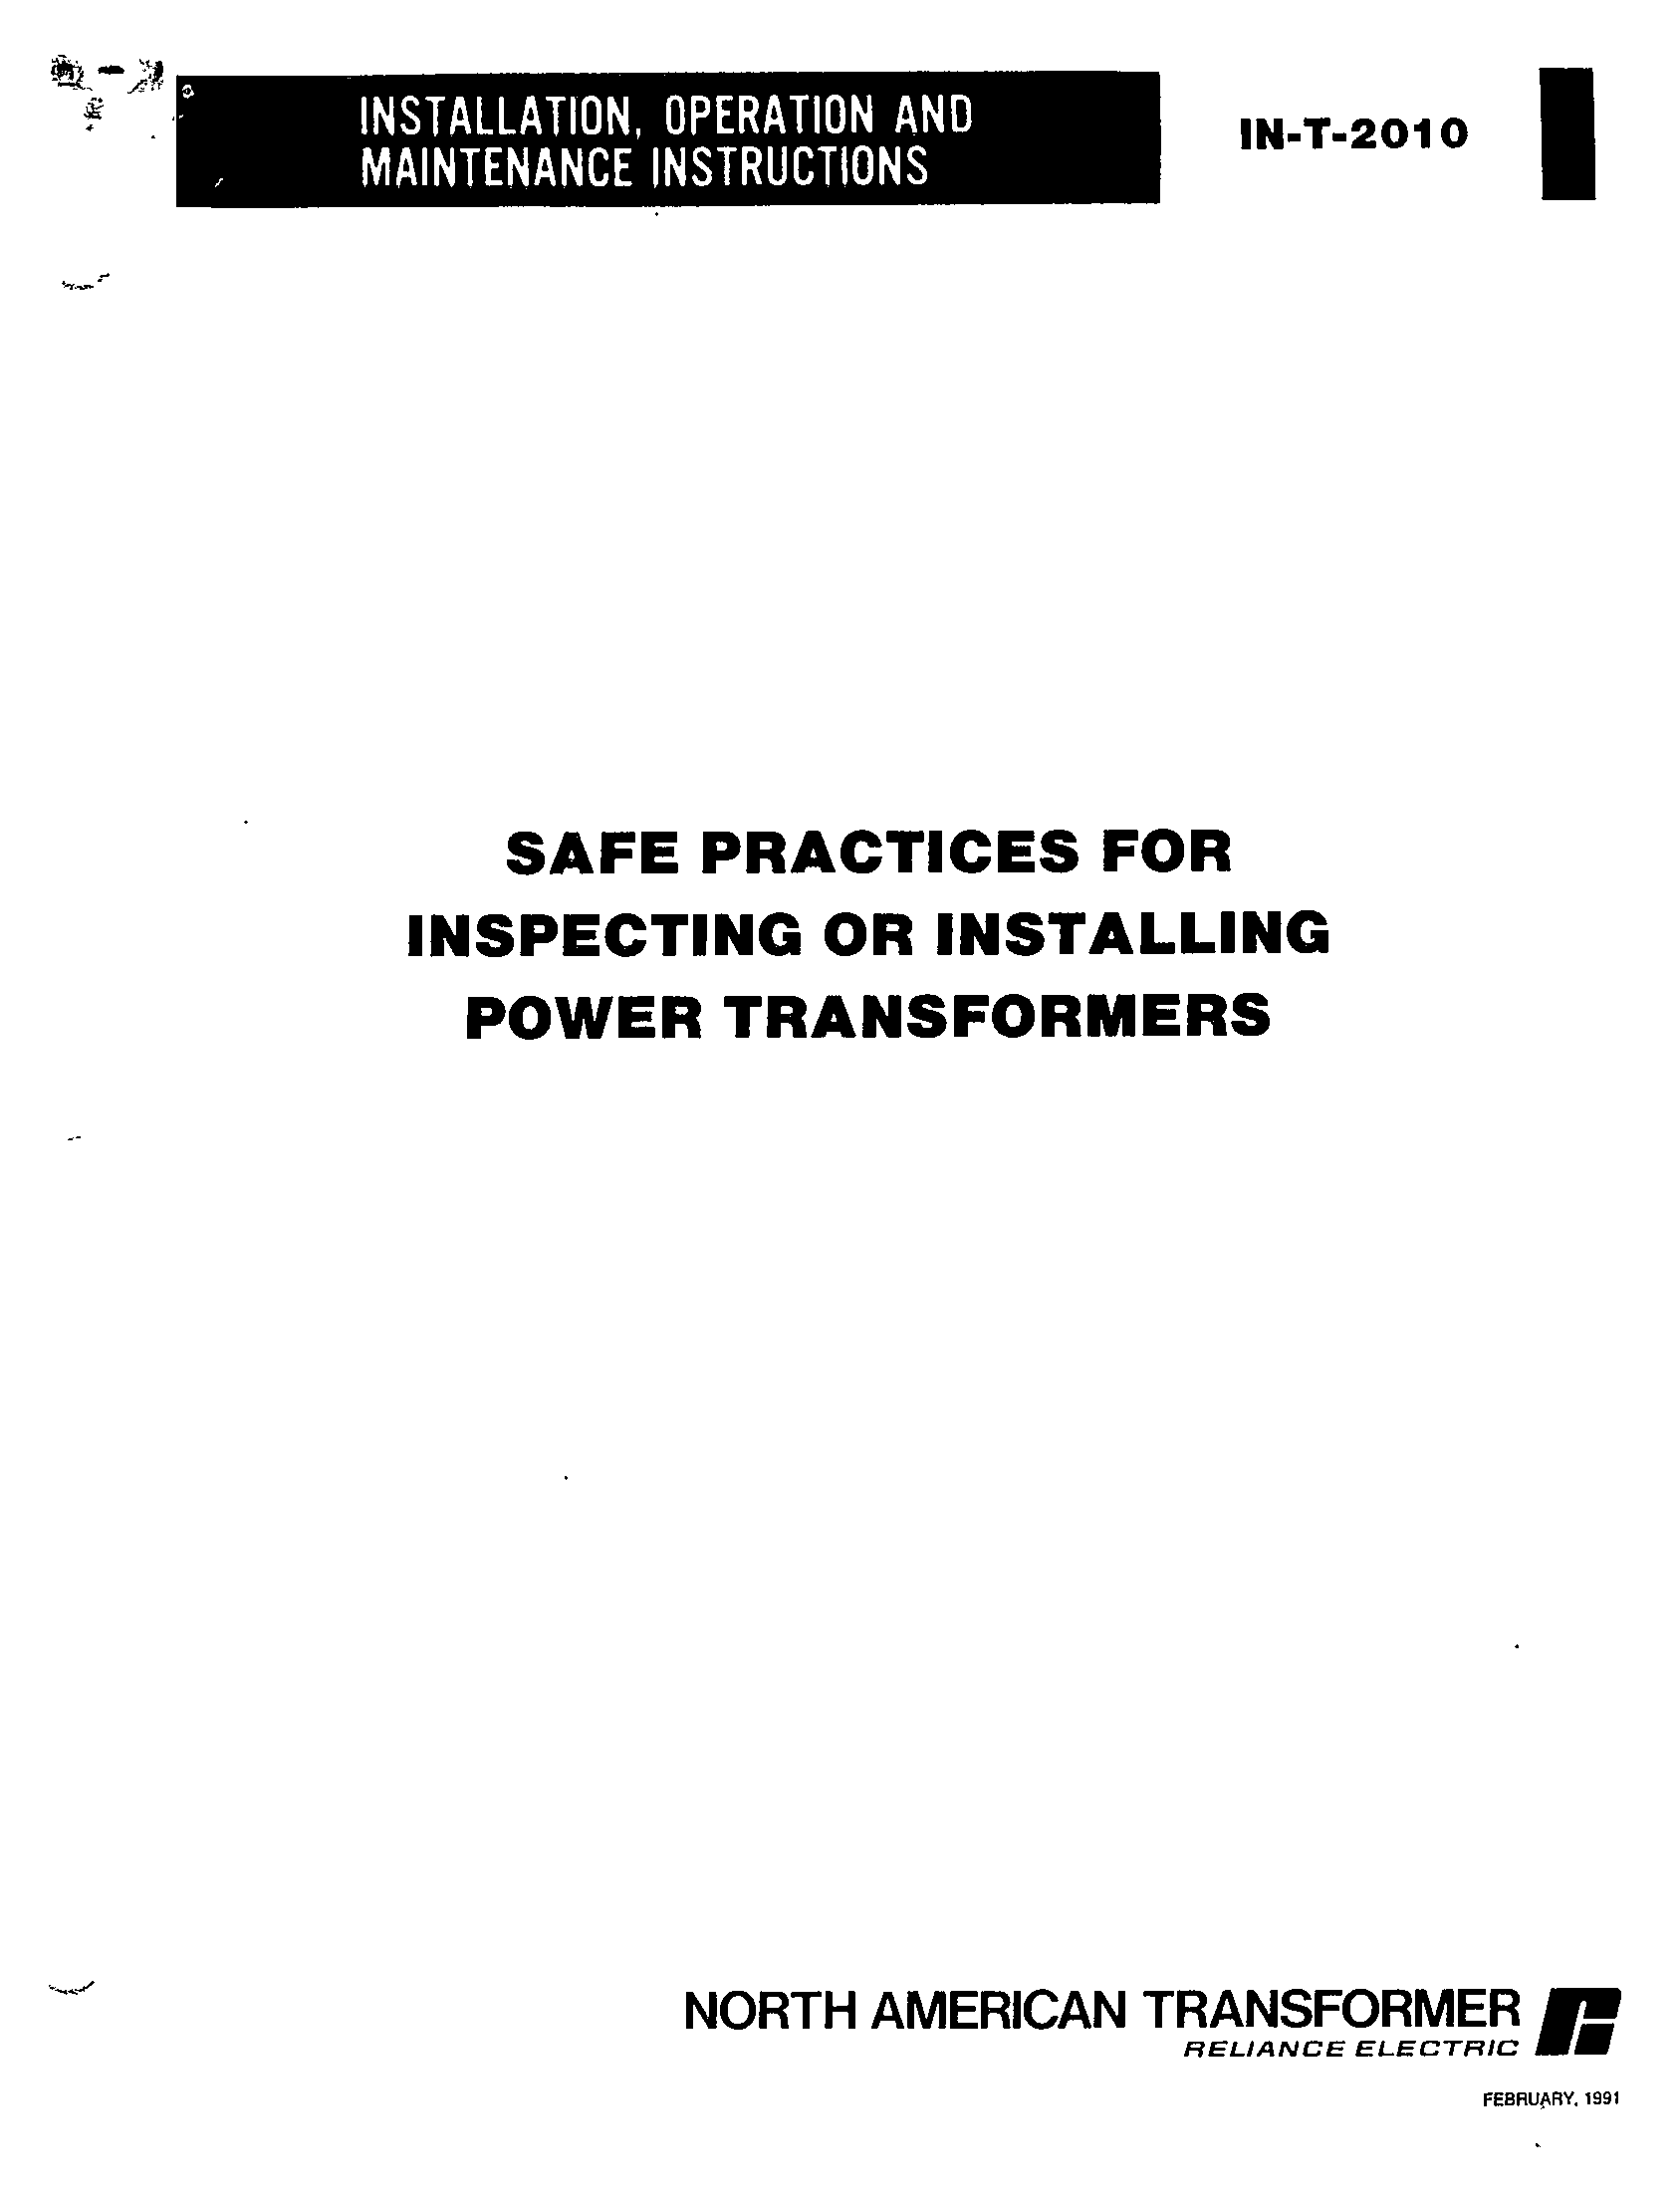 SAFE PRACTICES FOR INSPECTING OR INSTALLING POWER